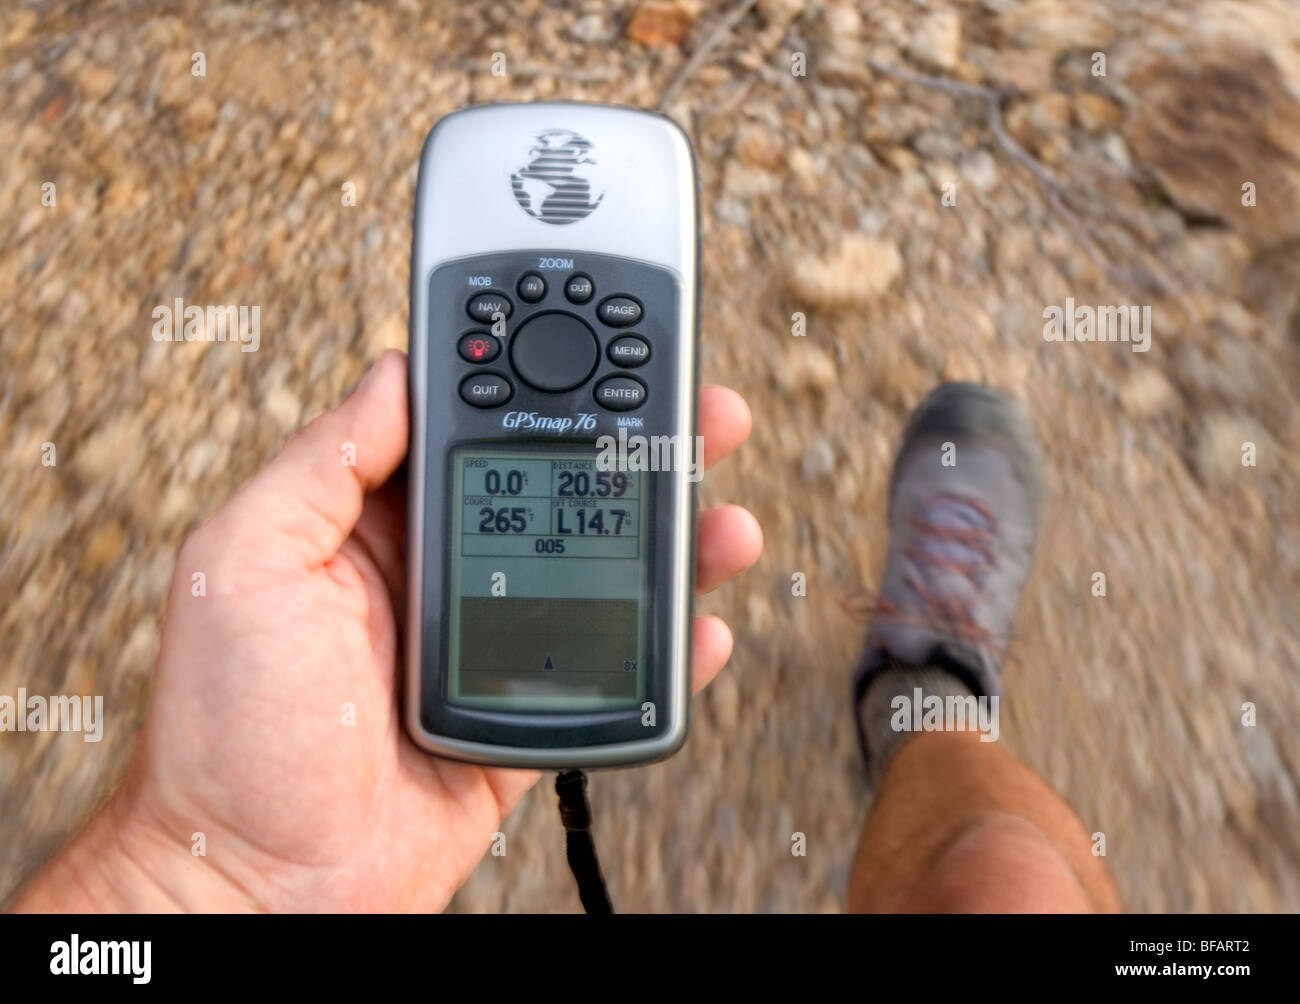 Looking at a GPS while hiking. - Stock Image